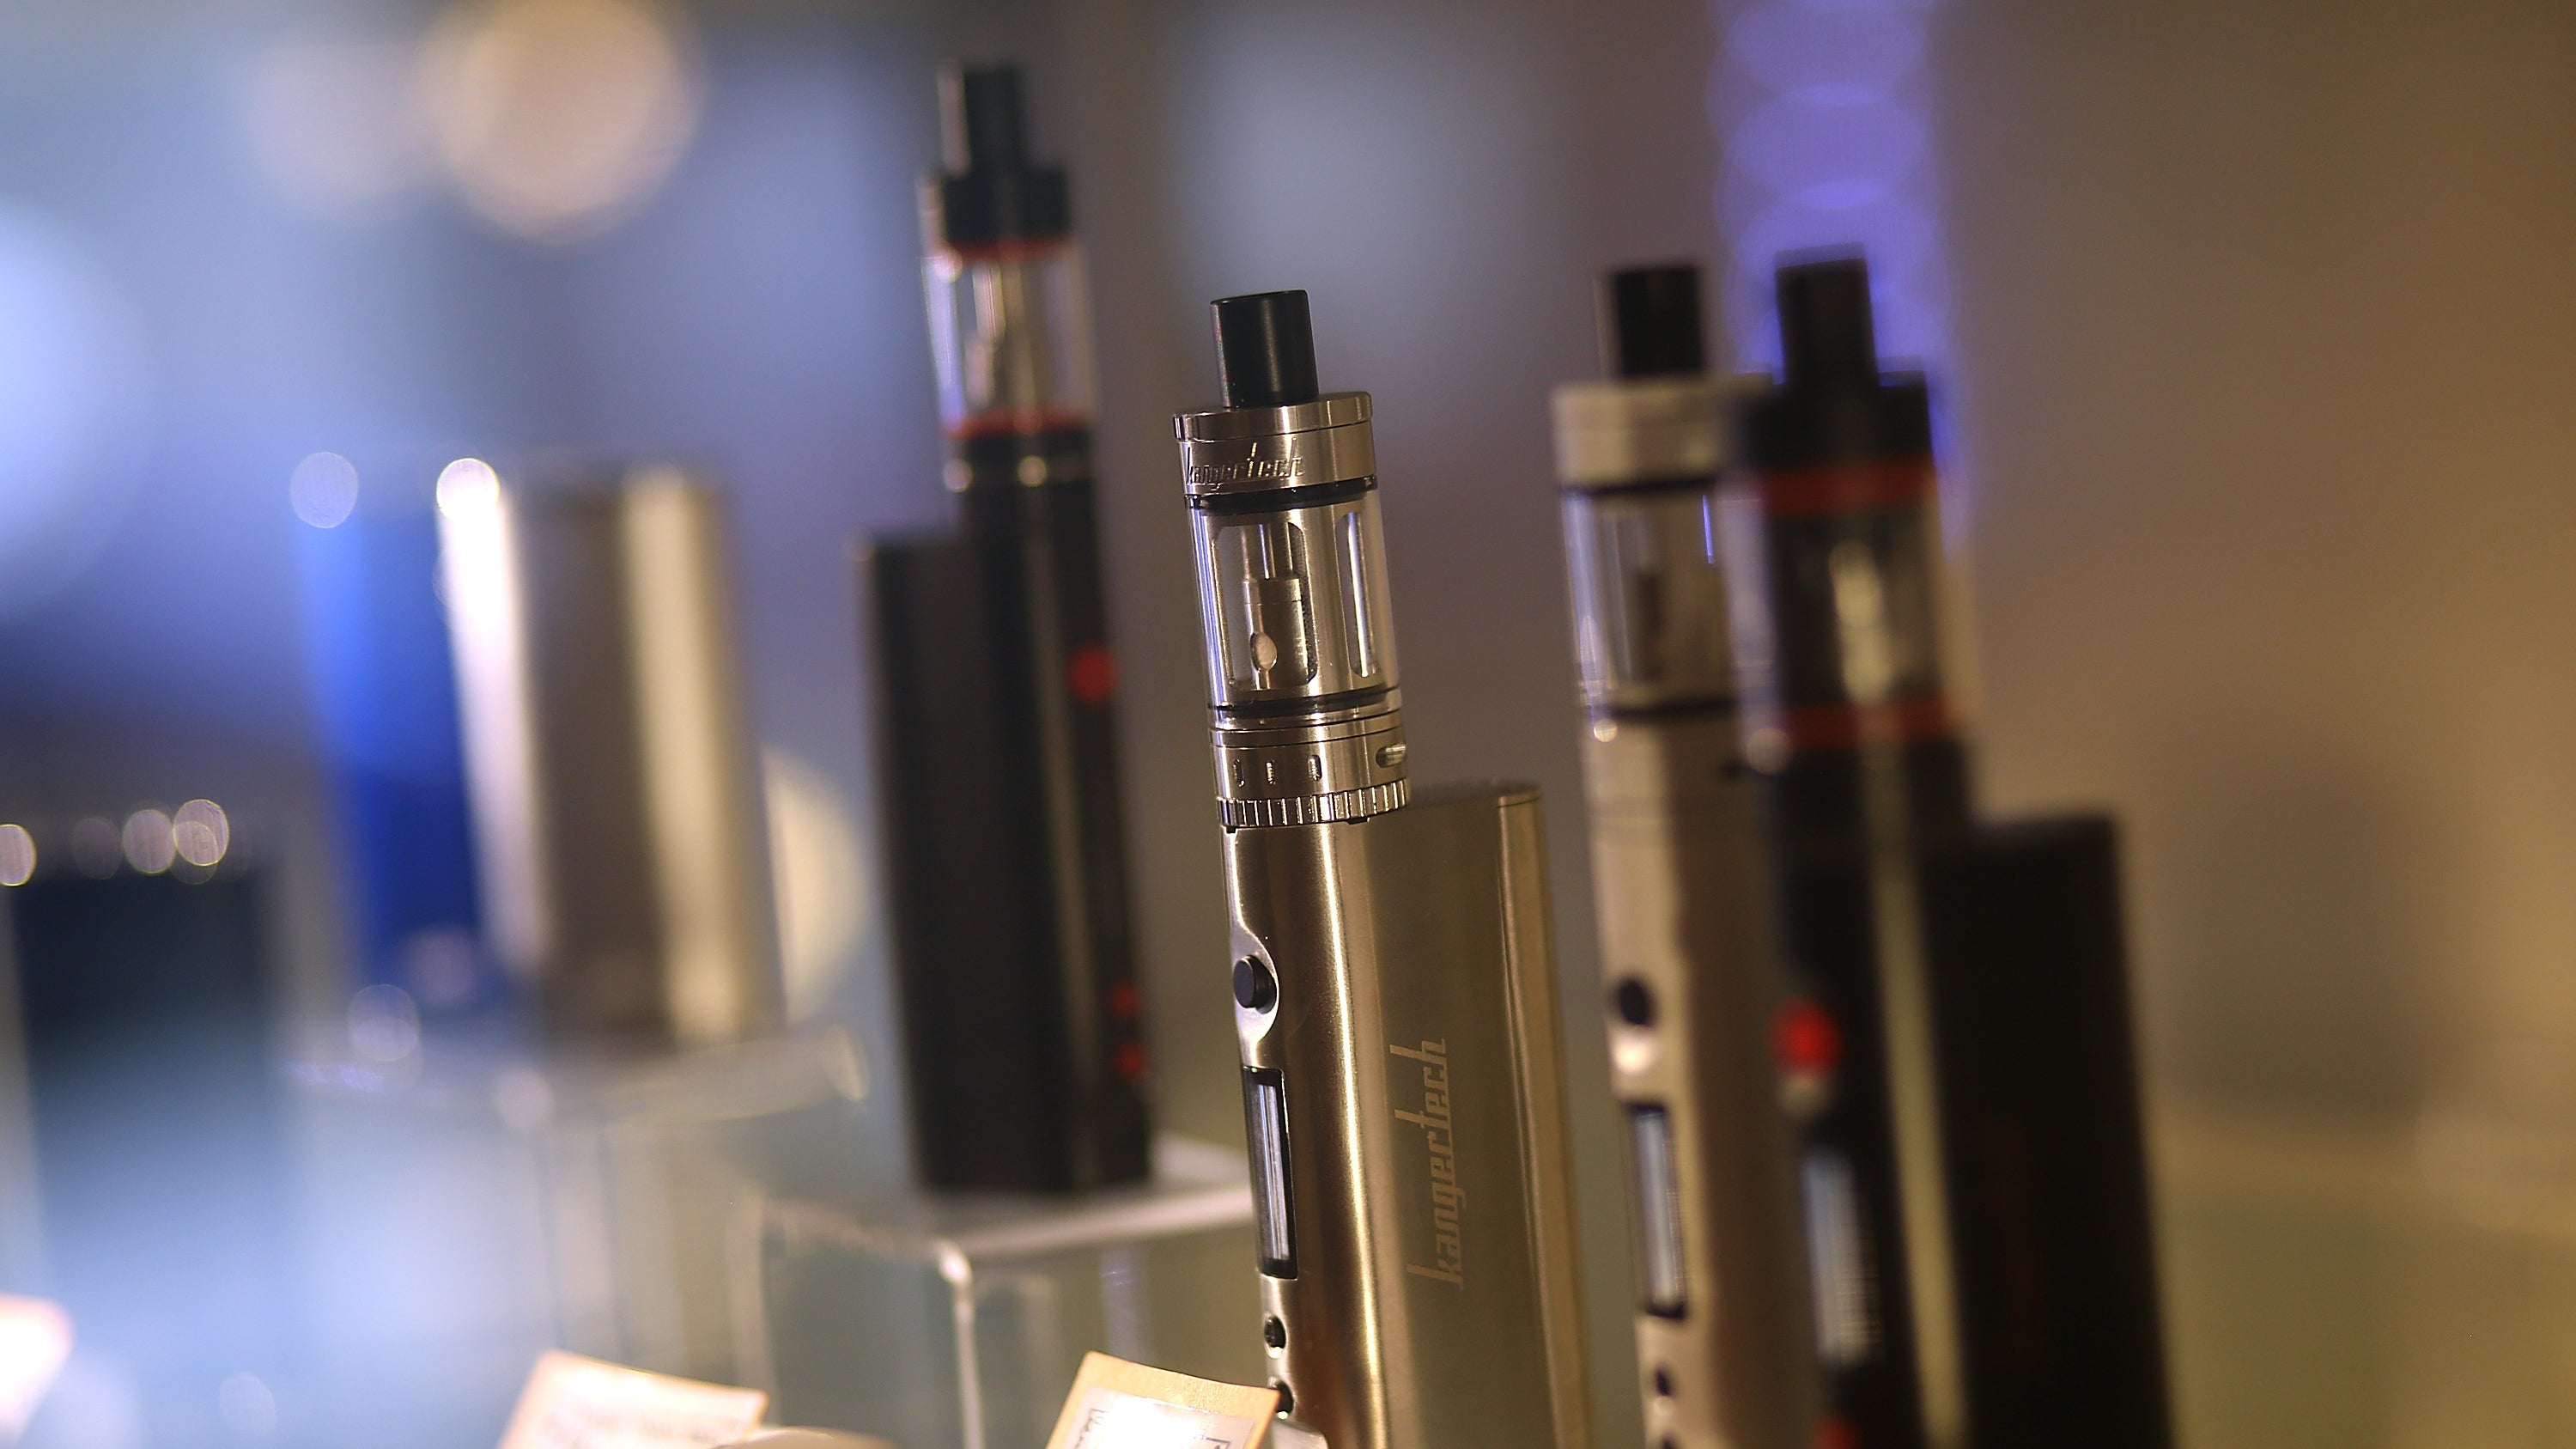 Fire Chief 'Bewildered' After Mysterious Incident At E-Cigarette Plant Left 29 Sick